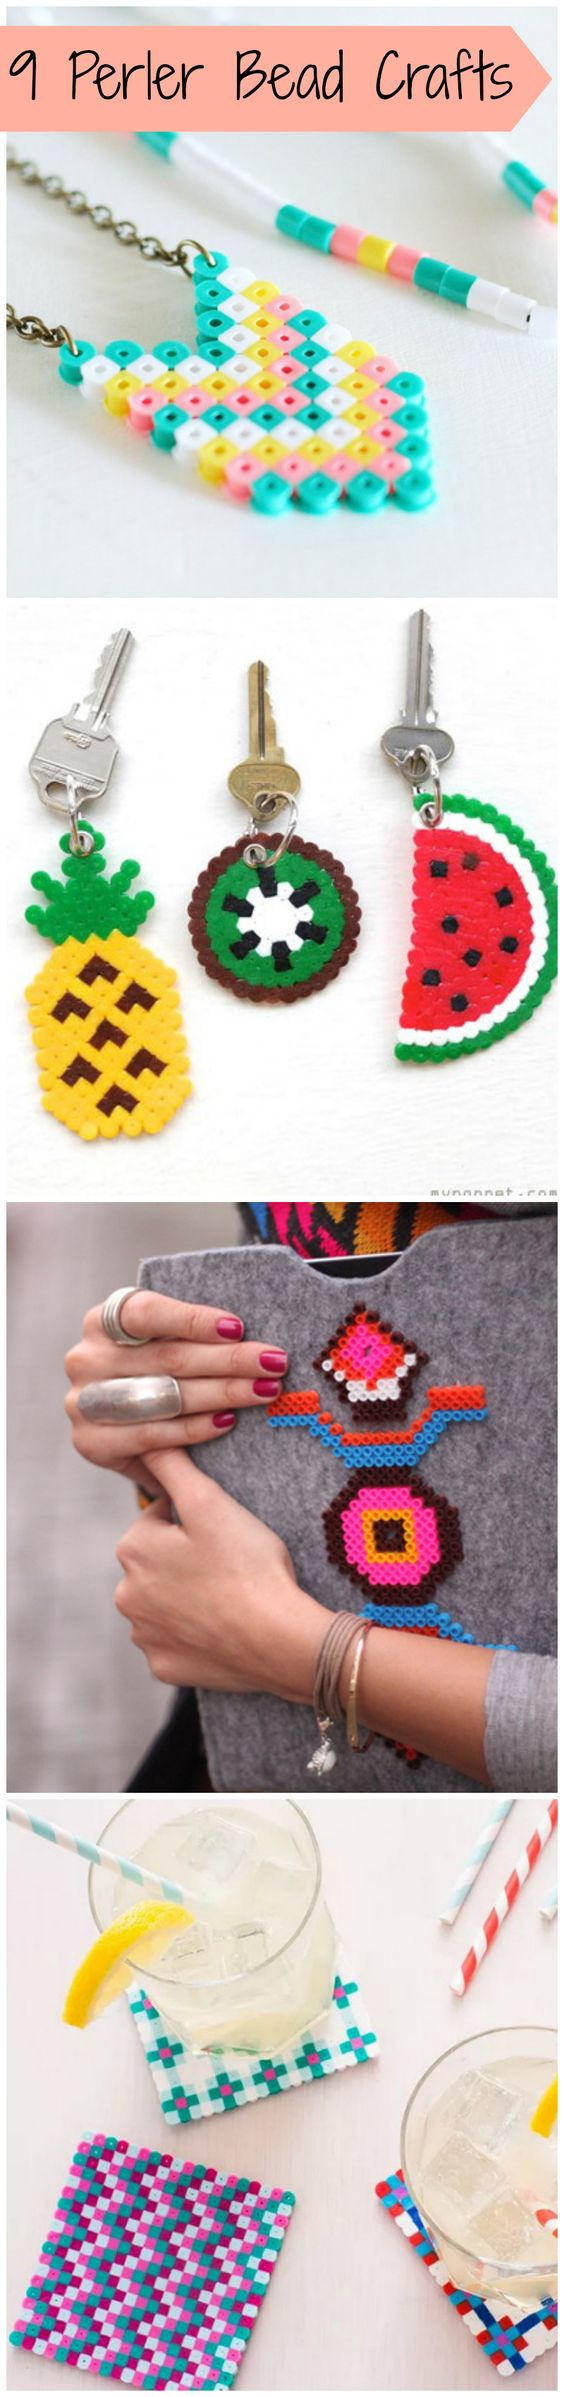 Cute (and Nostalgic!) Perler Bead Crafts - Use the plastic beads to make jewelry, key chains, coasters, or even DIY an tablet cover.